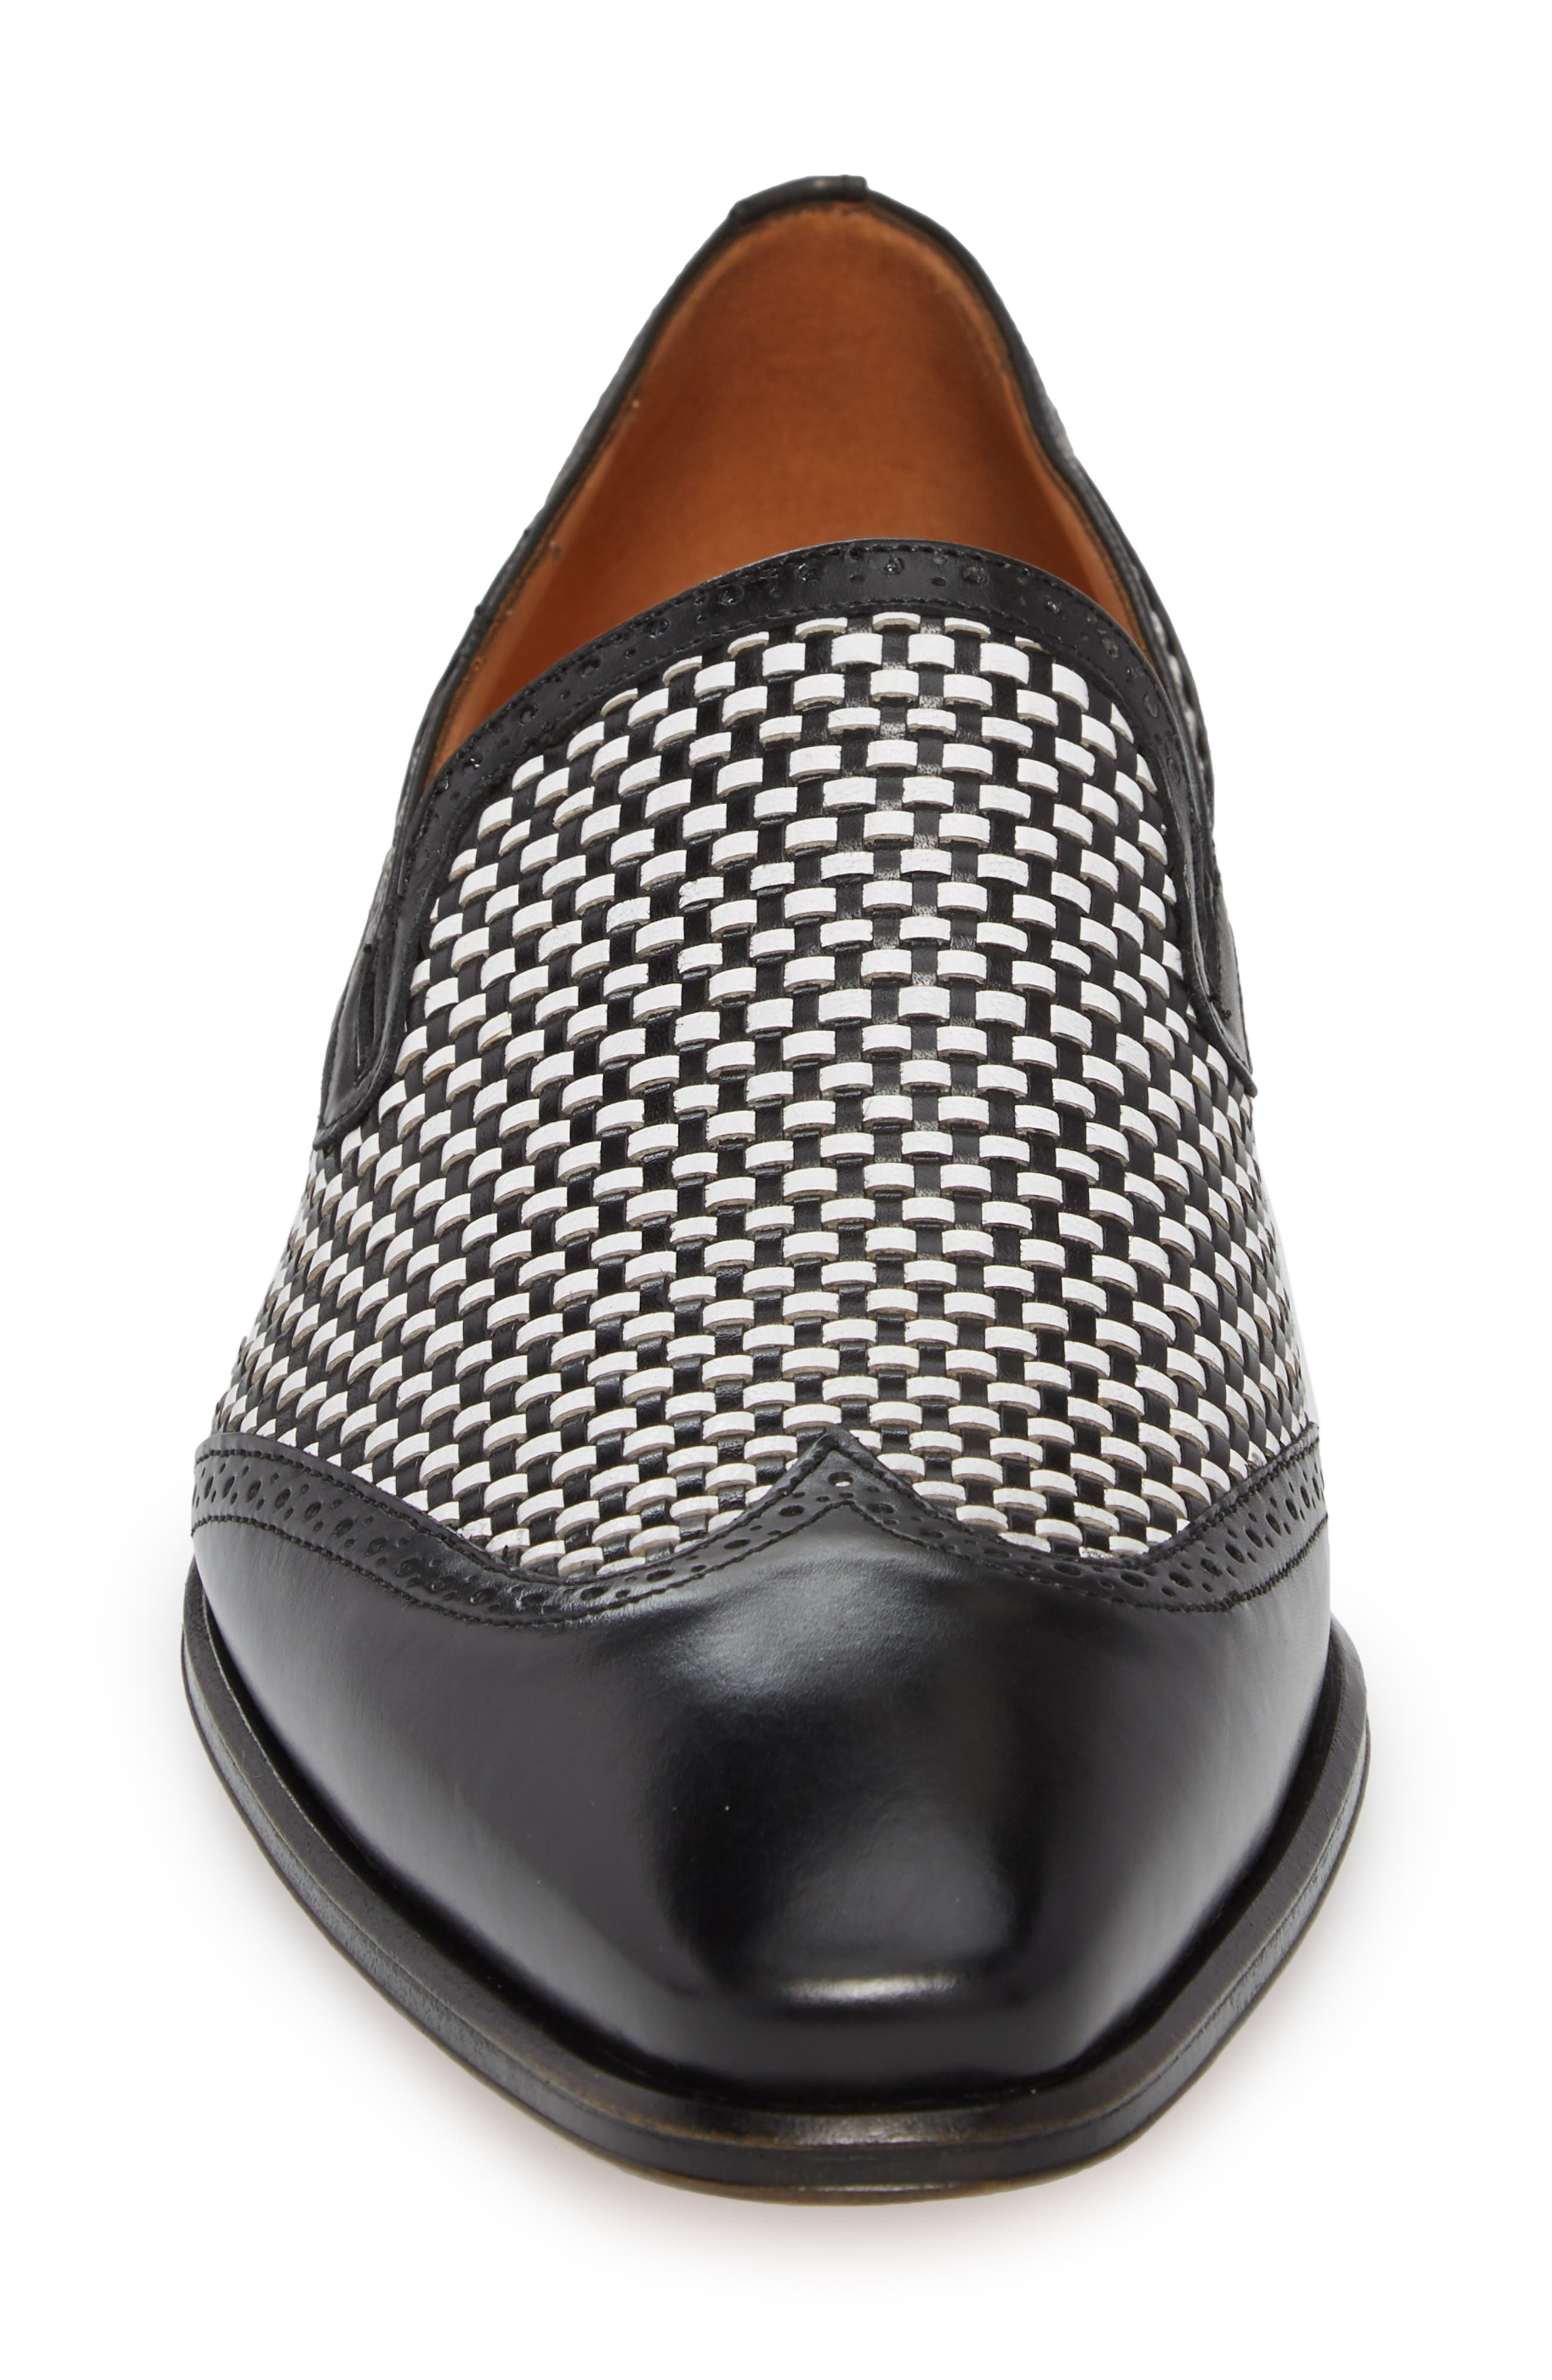 Nepos Woven Wingtip Loafer,                             Alternate thumbnail 4, color,                             Black/ White Leather